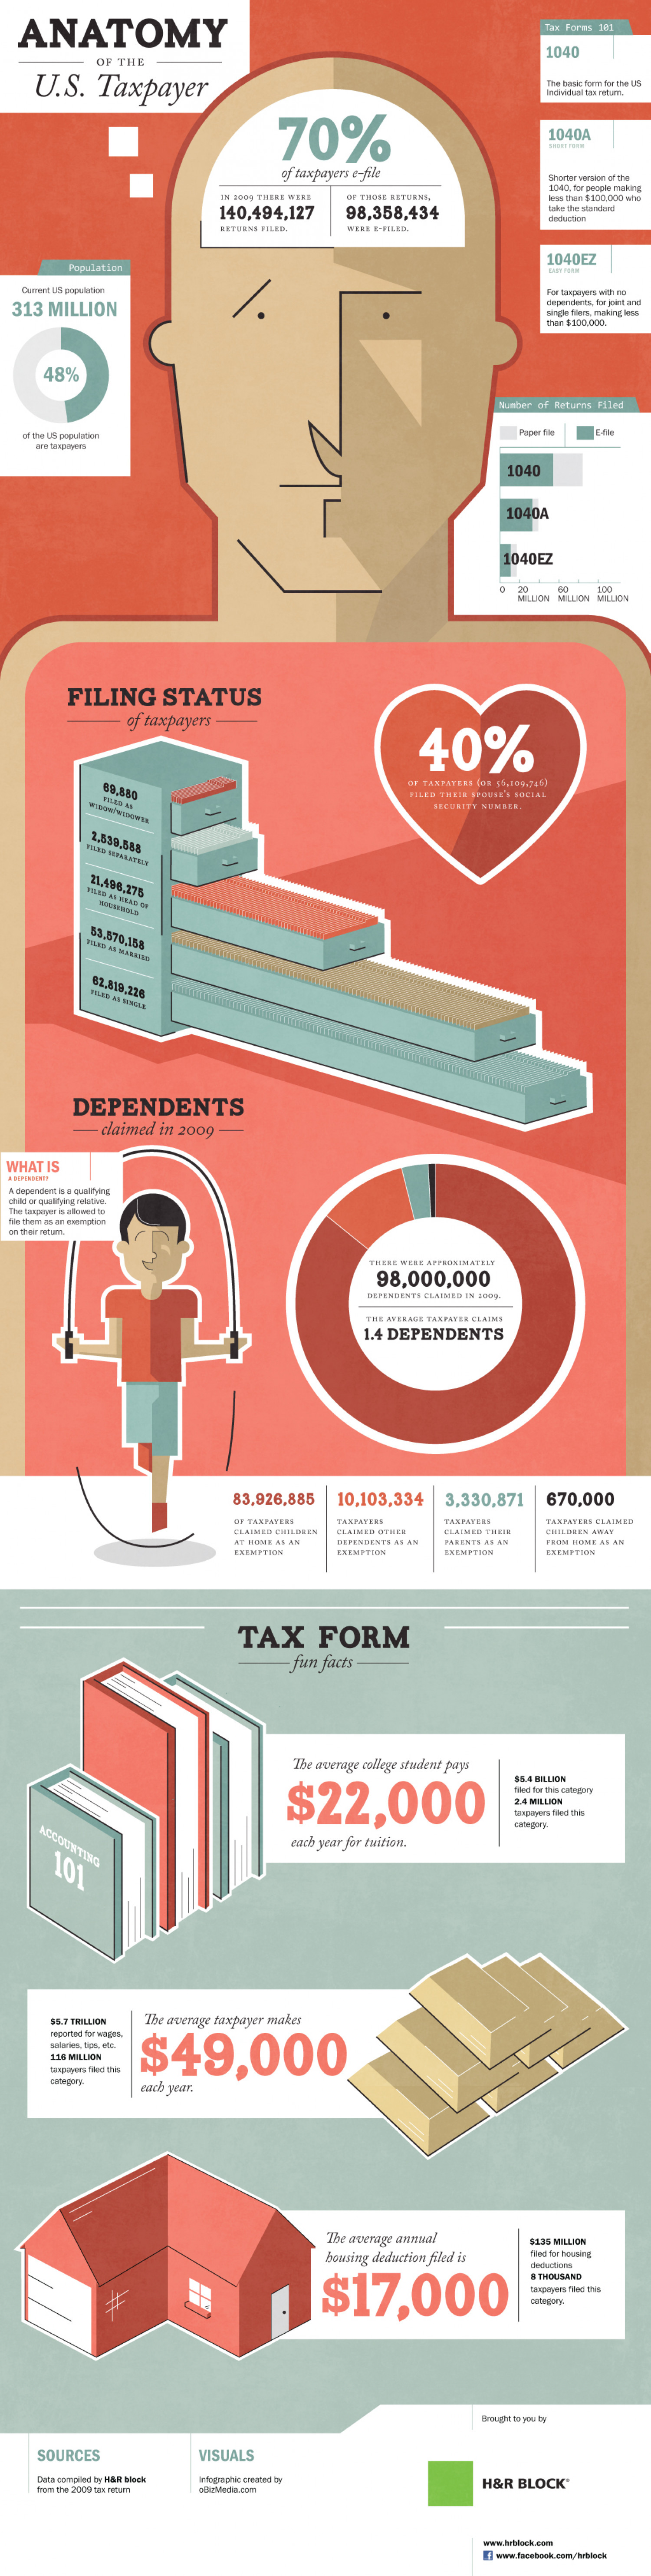 Anatomy of a U.S. Taxpayer Infographic